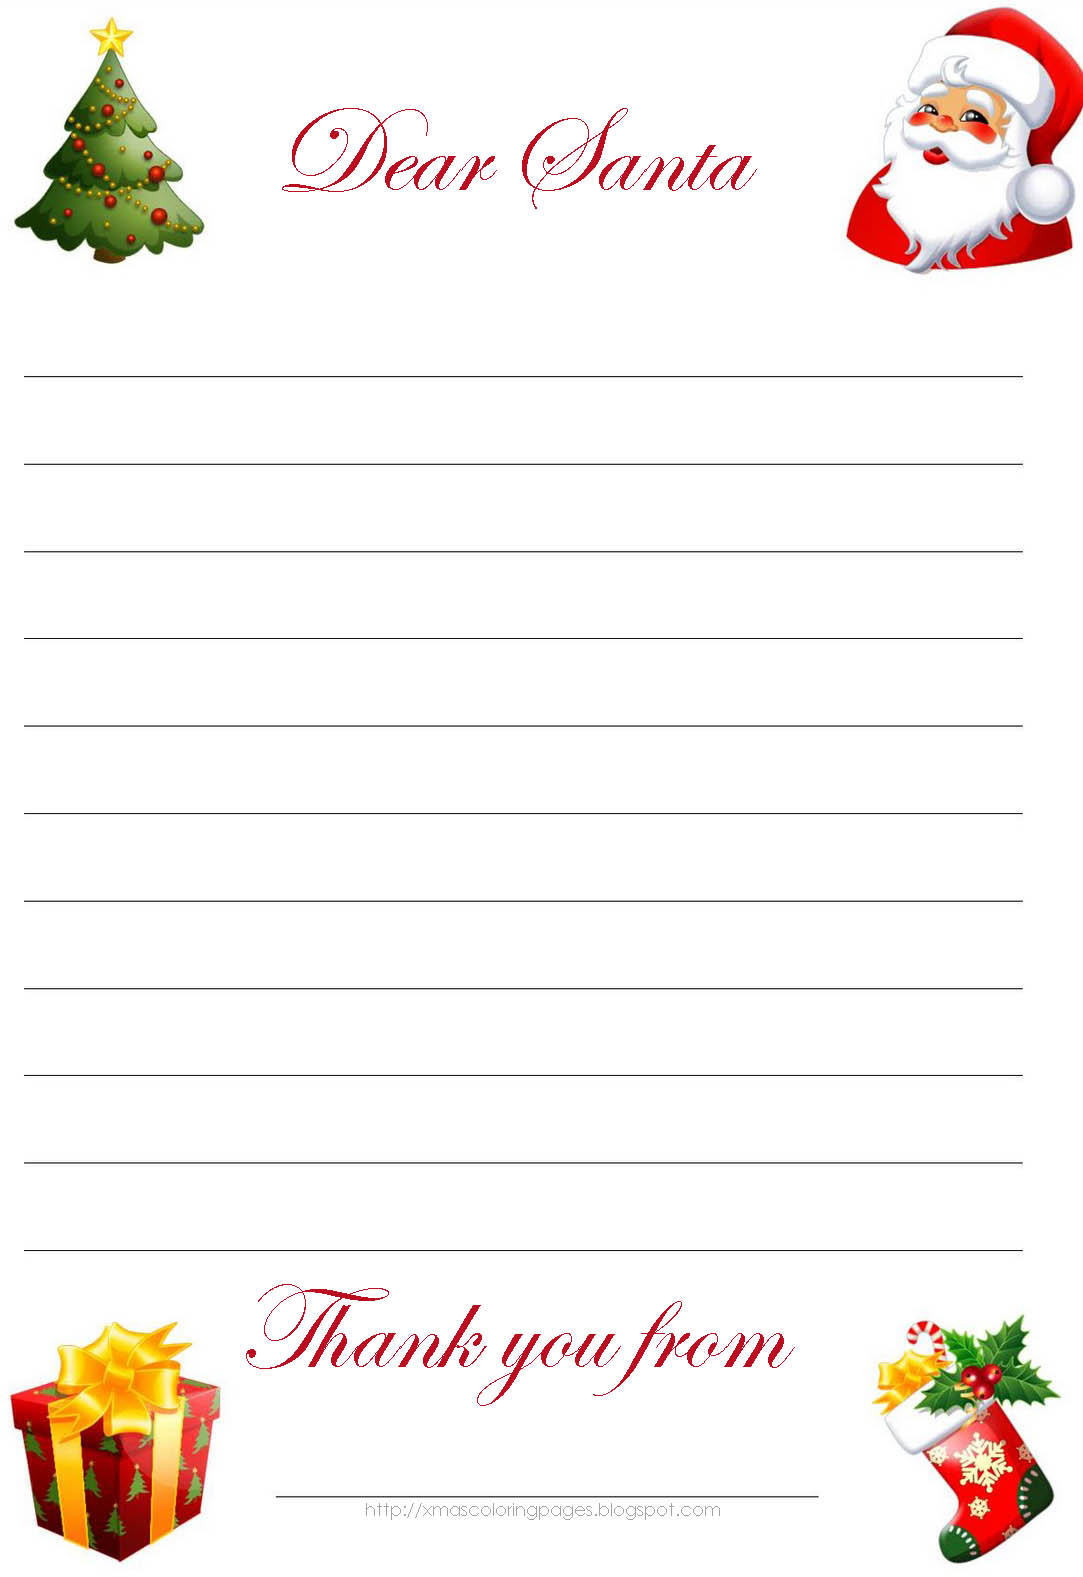 write a letter to santa with these templates